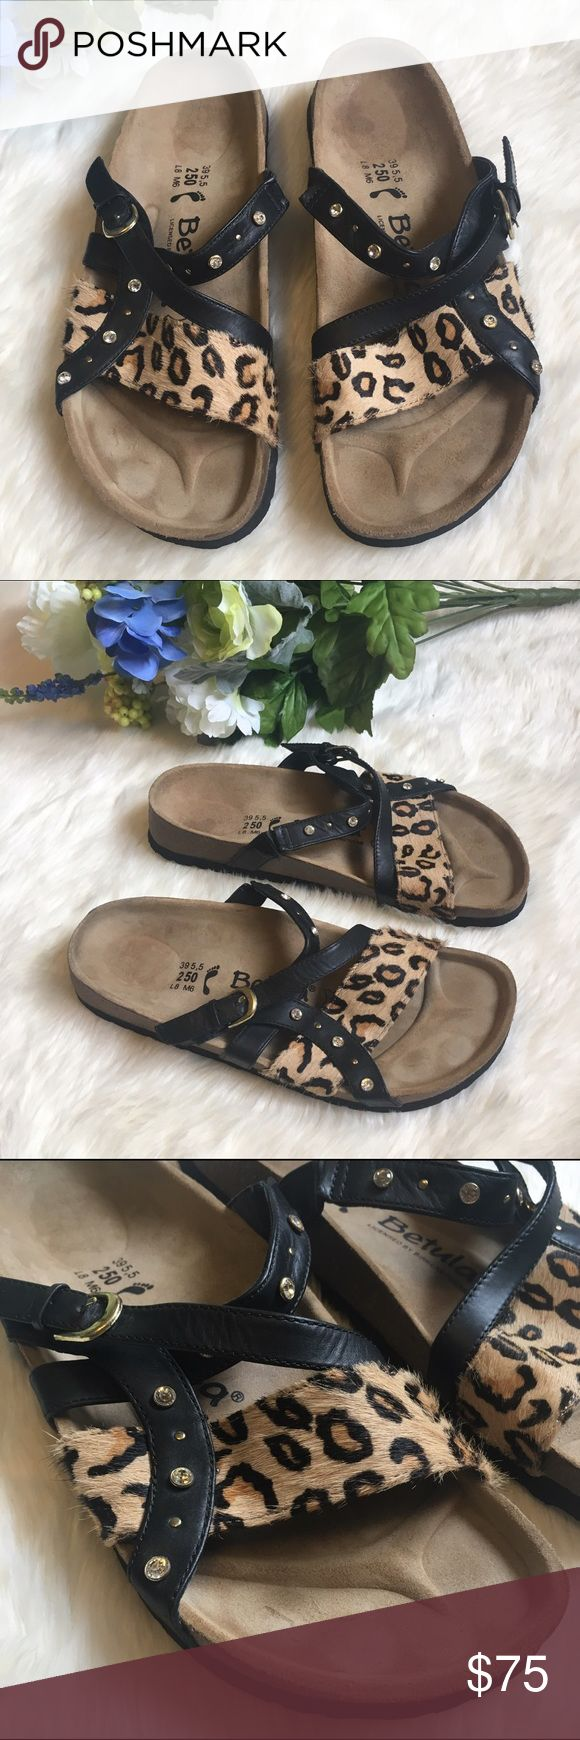 Birtkenstock Betula Leopard Print Bling Sandals Like new! These Betula sandals have three leather straps, one with a leopard print fur, the other with bling/metal stud patterns--super cute! These are marked as size 8L or 6M Birkenstock Shoes Sandals